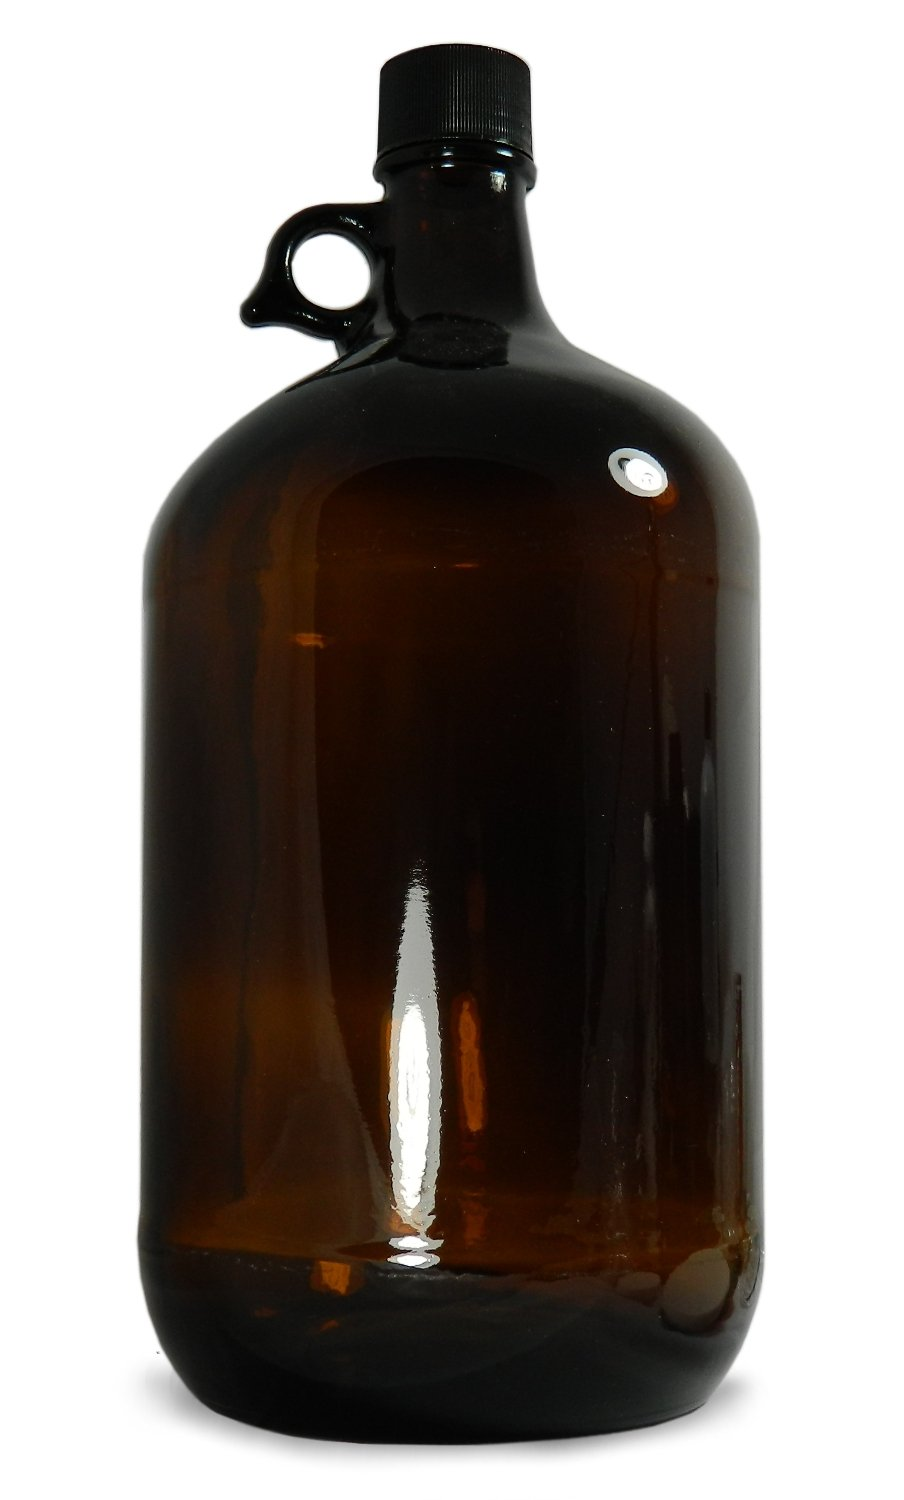 Qorpak GLC-02054 Amber Glass Jug with 38-400 Black Phenolic with Pulp/Vinyl Lined Cap, 128oz Capacity, 165mm OD x 297mm Height (Case of 6)